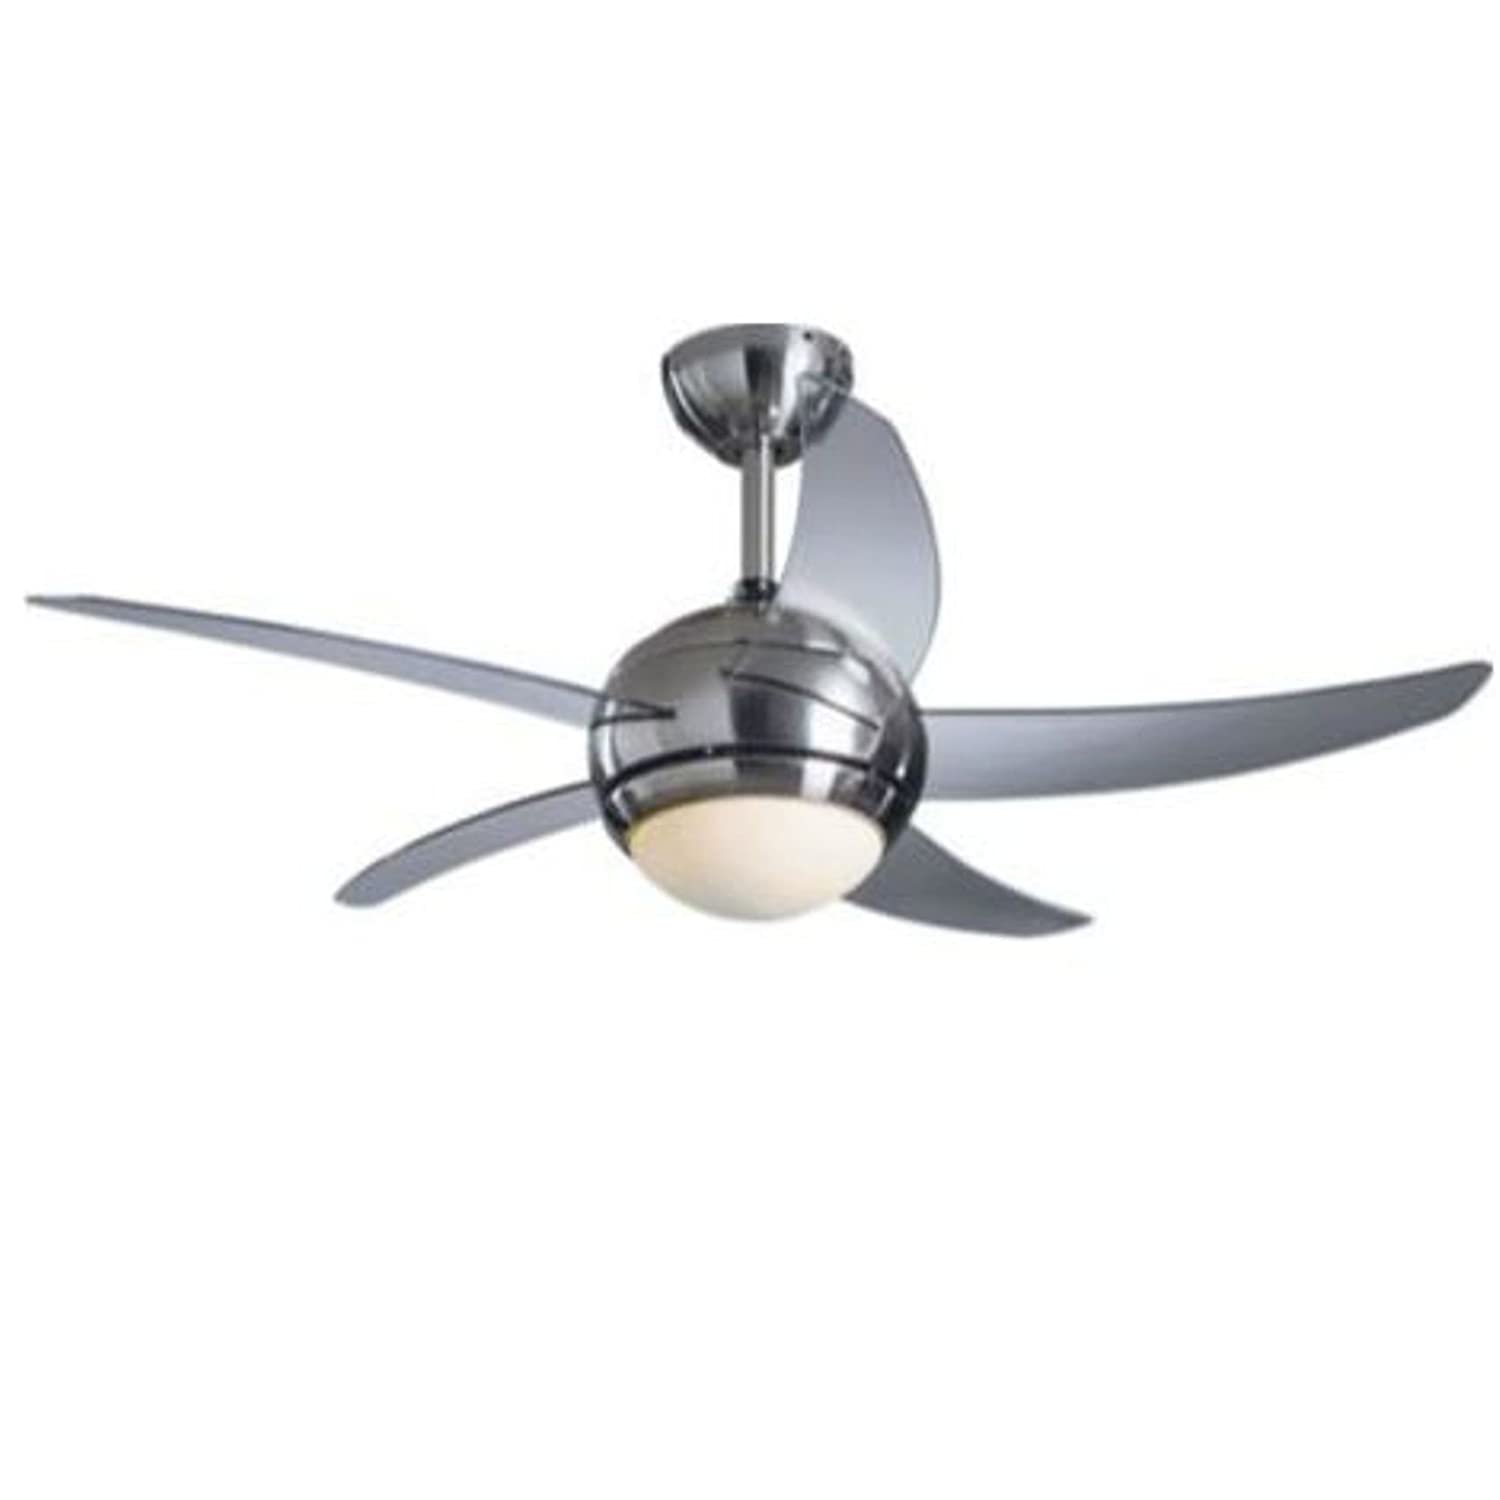 HSB Bundle ] Living Manhattan Satin Nickel Finish Ceiling Fan with